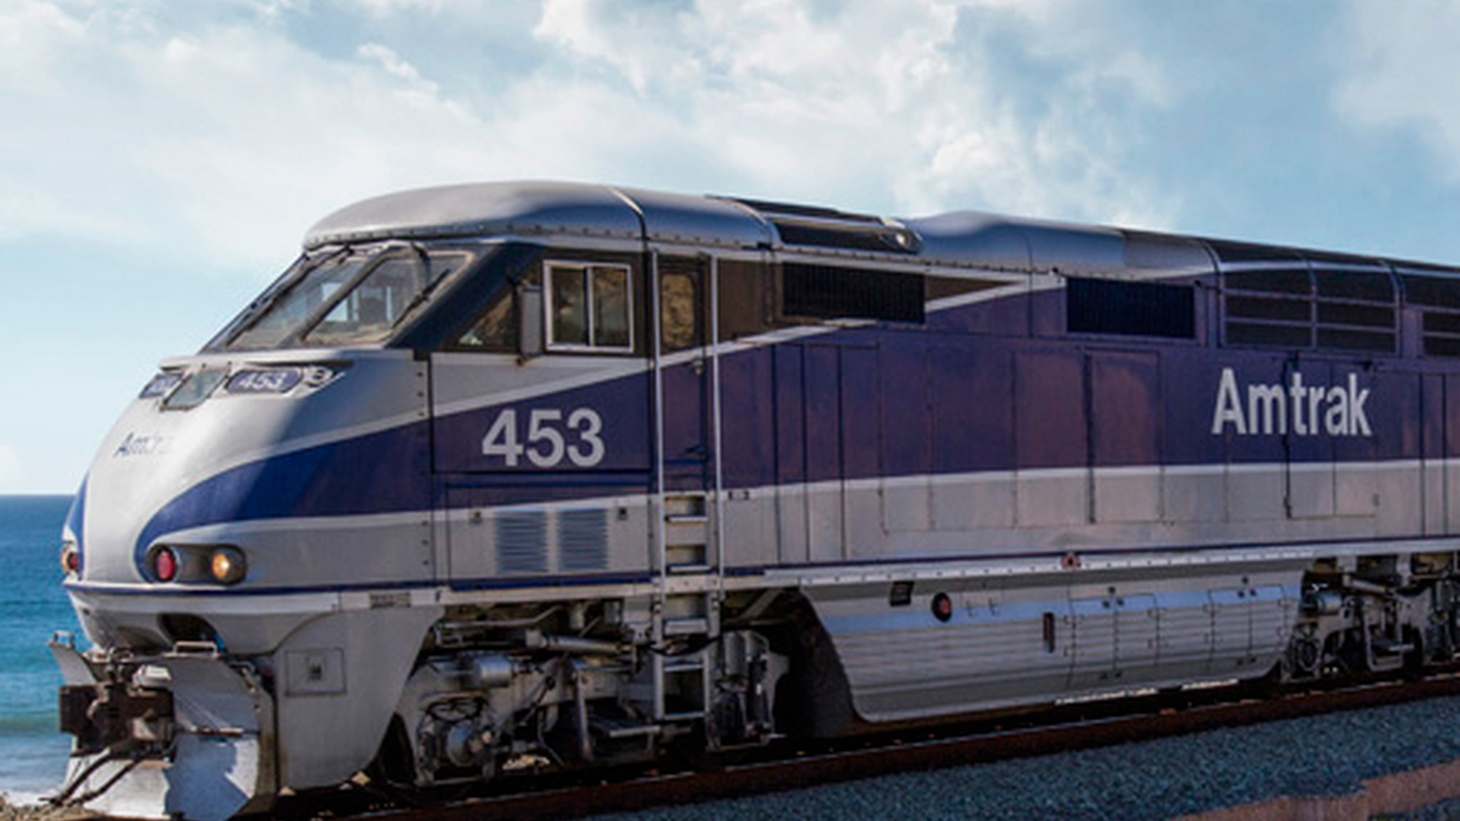 There's finally a morning commuter train between Ventura and Santa Barbara, but how many people are taking it and will it reduce traffic along Highway 101?